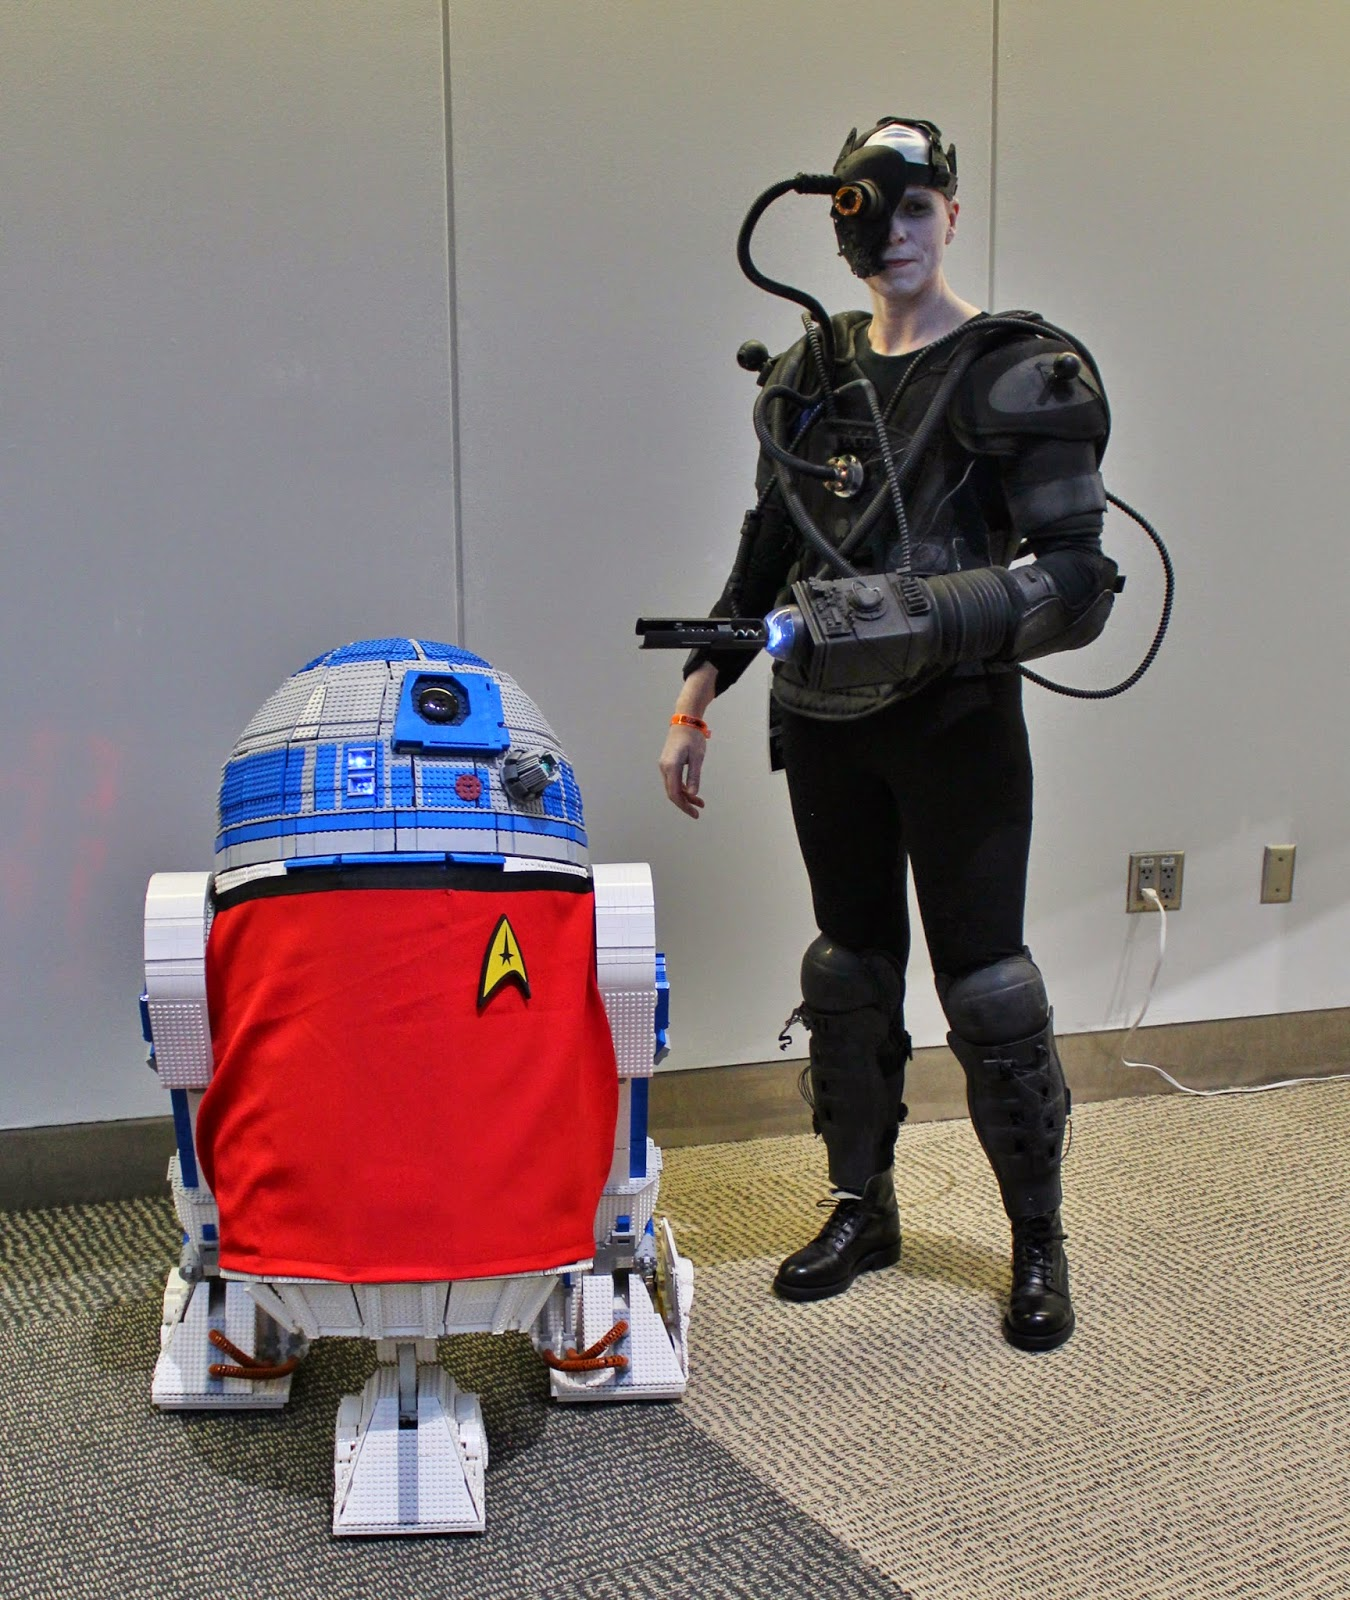 Borg Cosplay with Lego R2D2 in Red Shirt